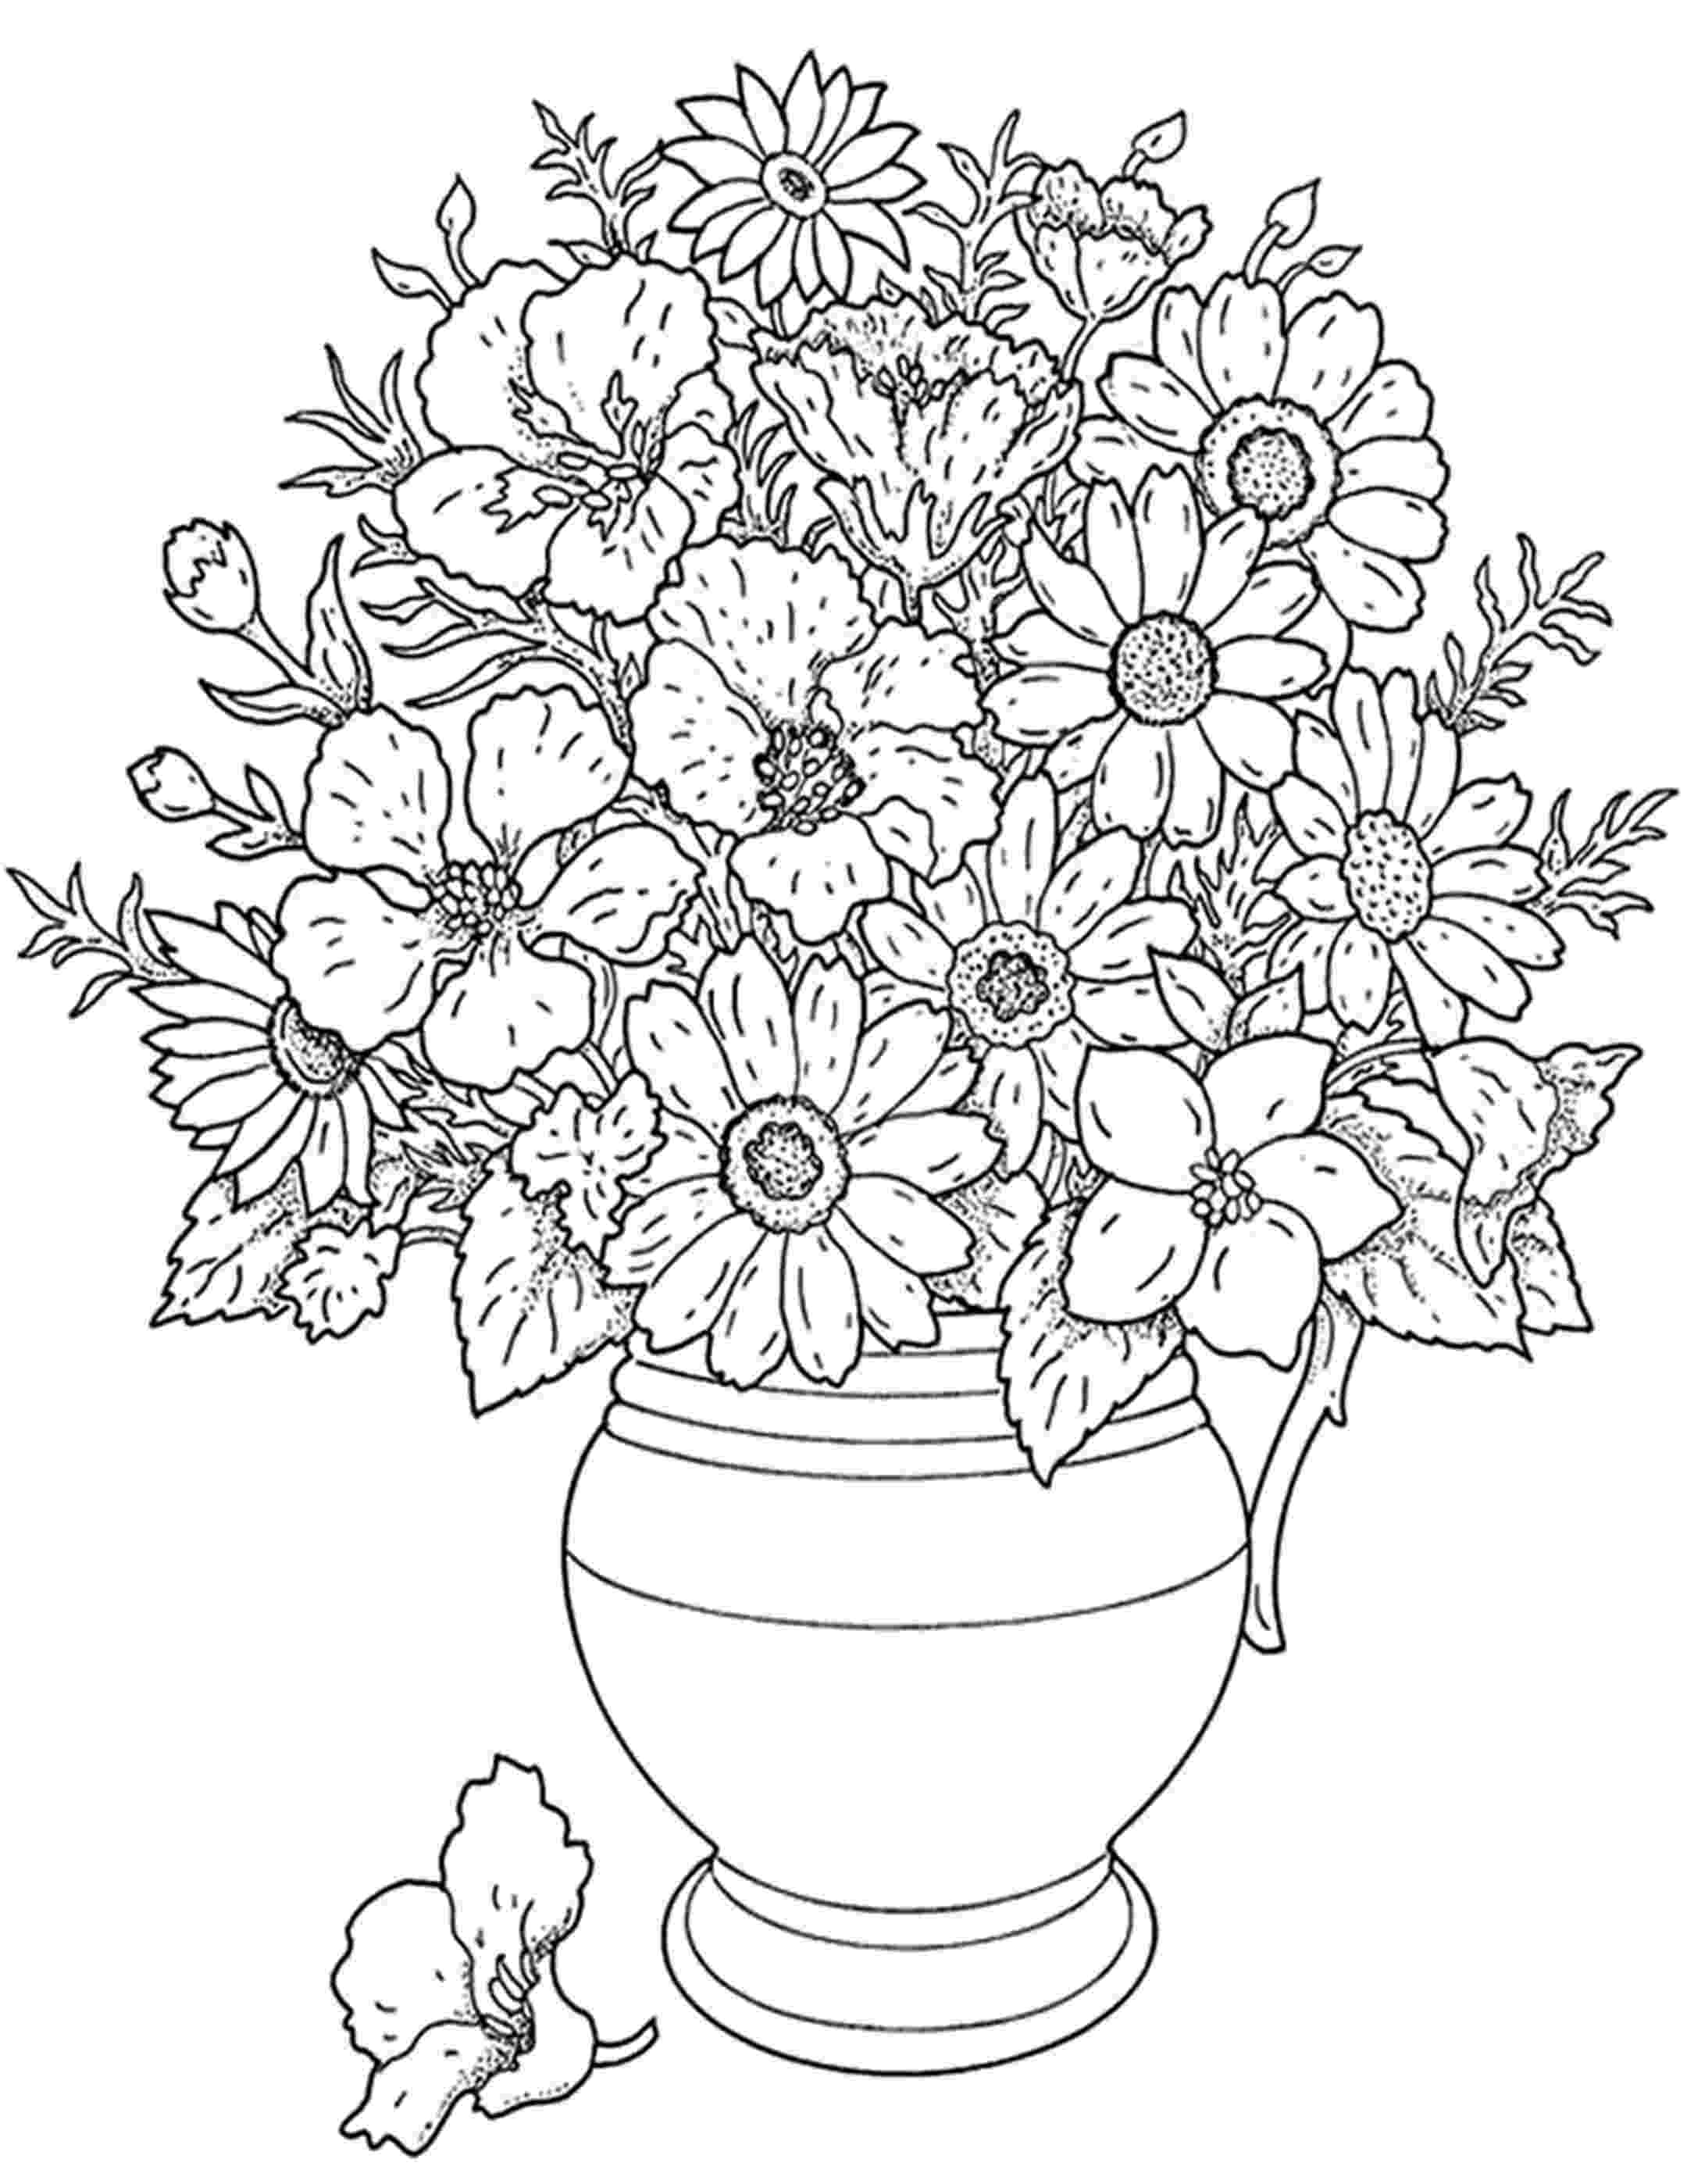 pictures of flowers to color free printables free printable flower coloring pages for kids best printables to flowers color pictures free of